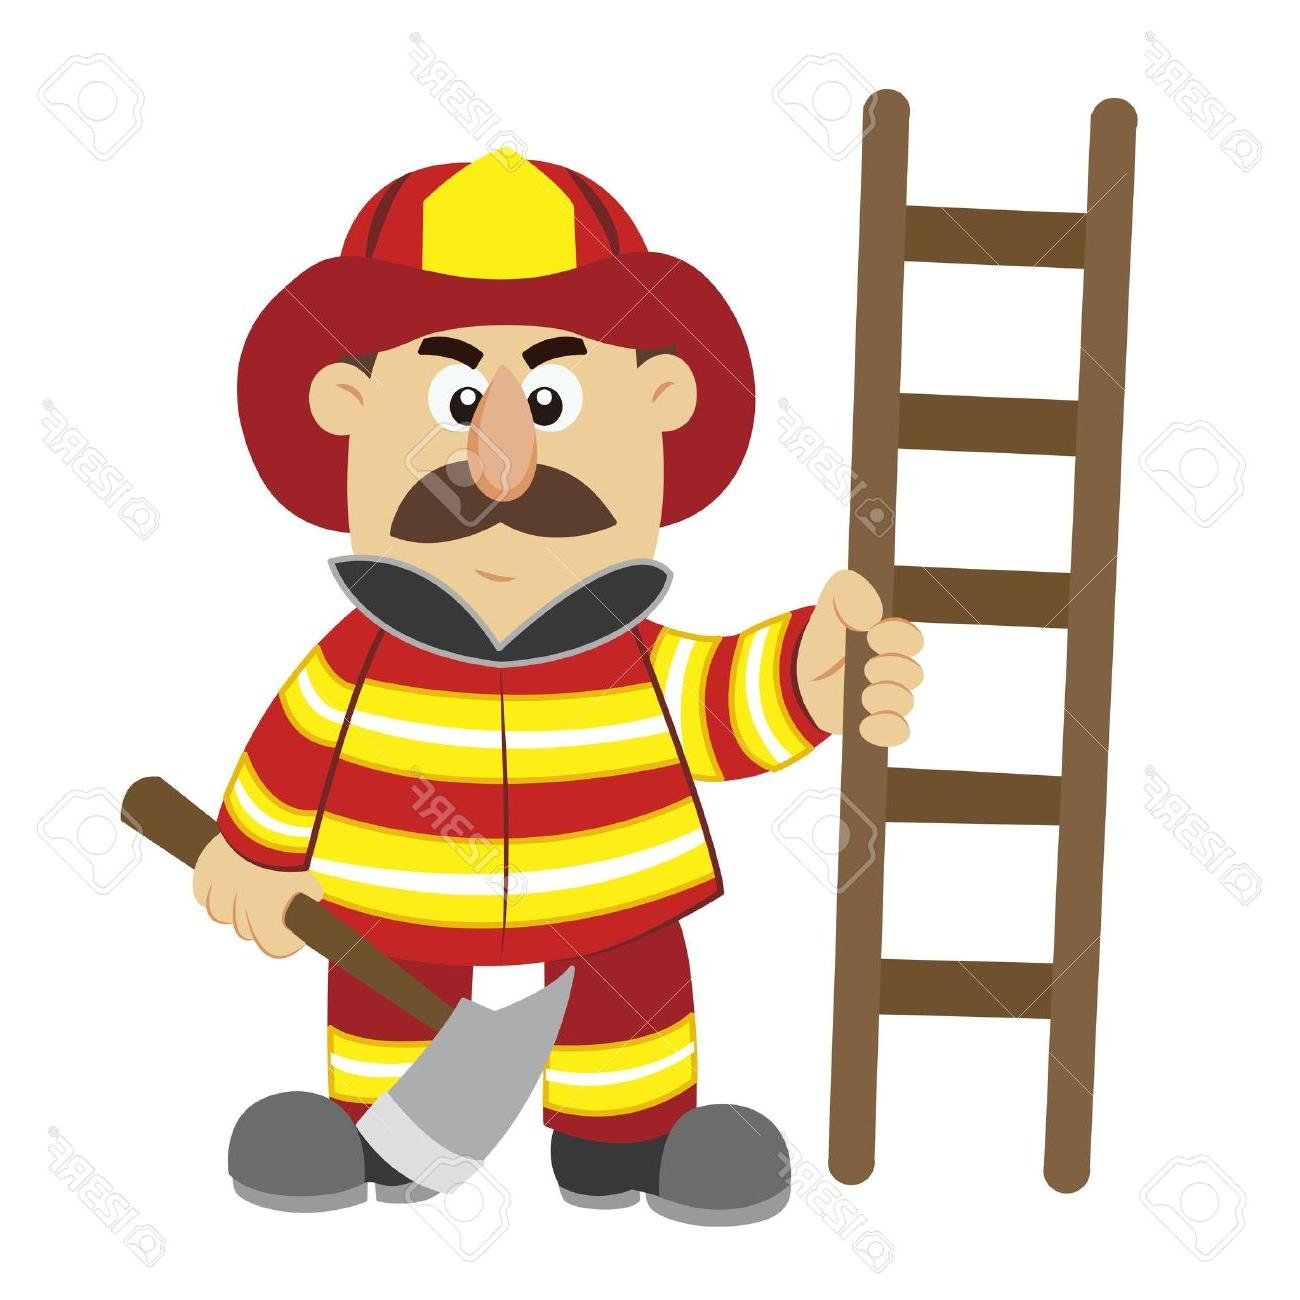 firefighter silhouette vector at getdrawings com free for personal rh getdrawings com fireman clip art free fireman clipart images